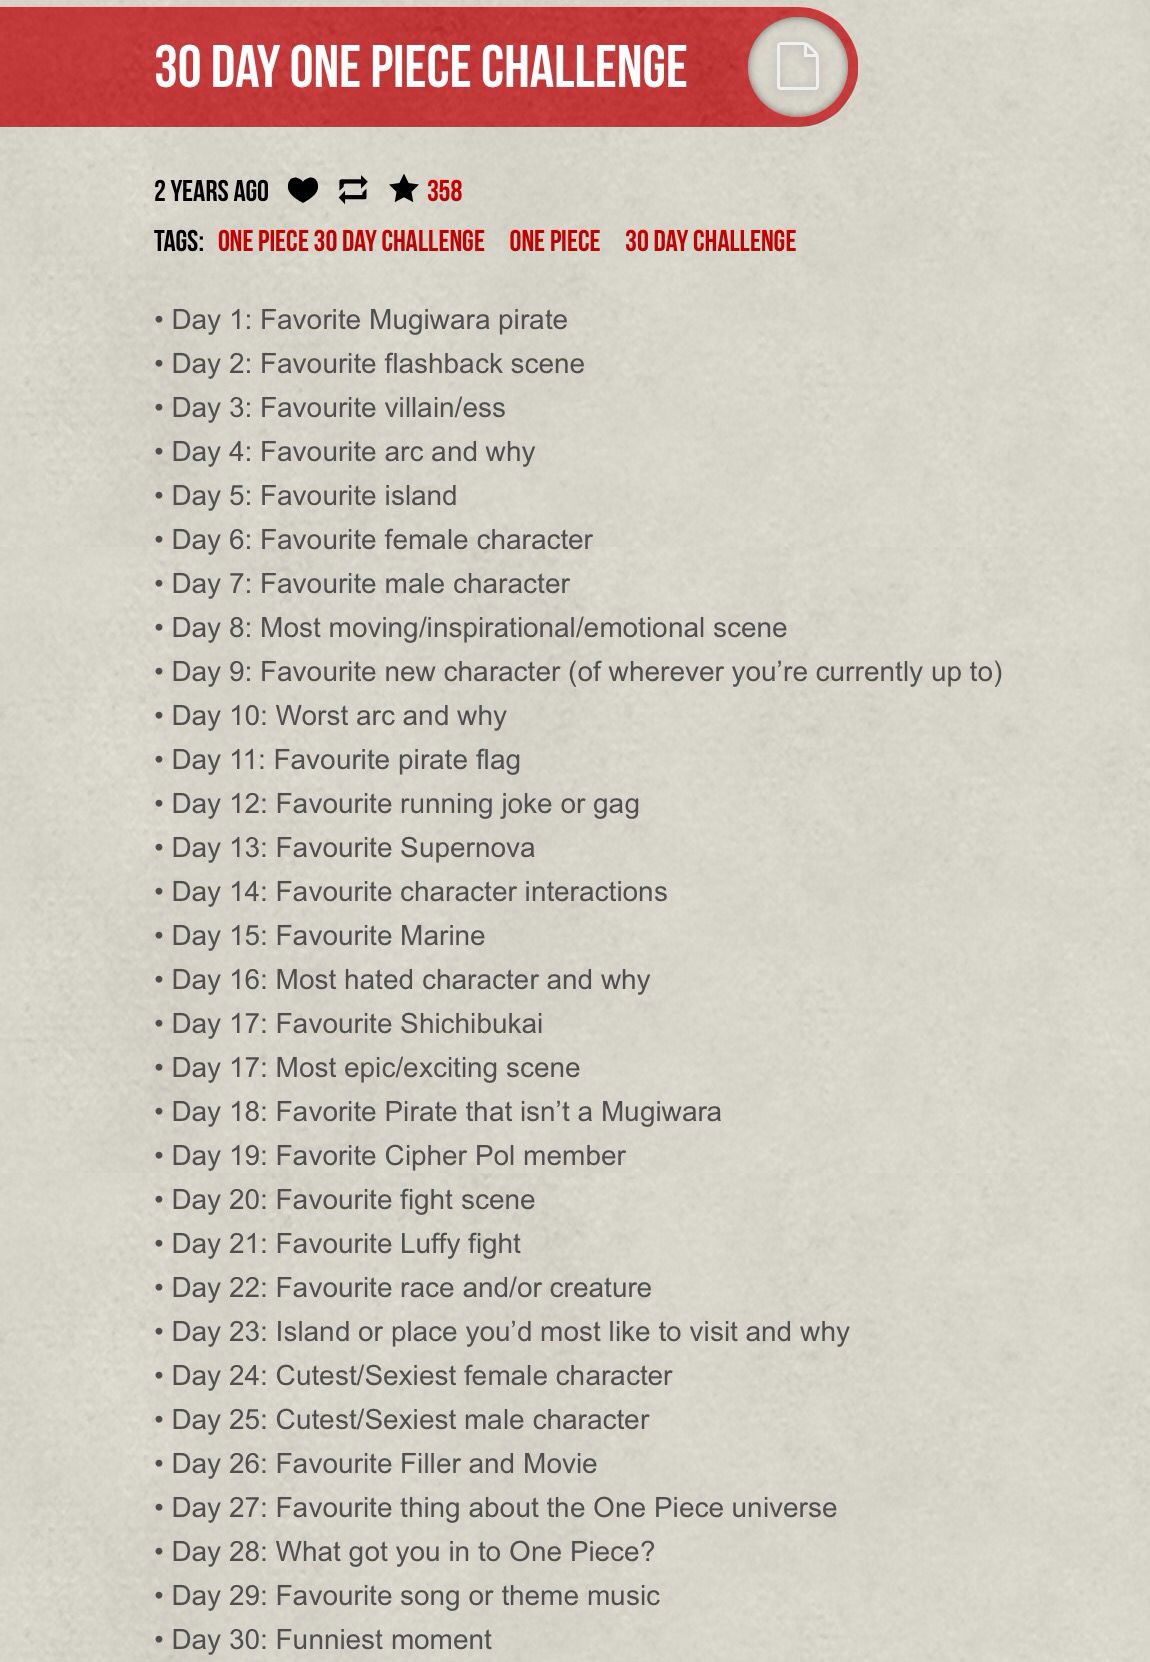 30 Day One Piece Challenge Challenges Piecings One Piece